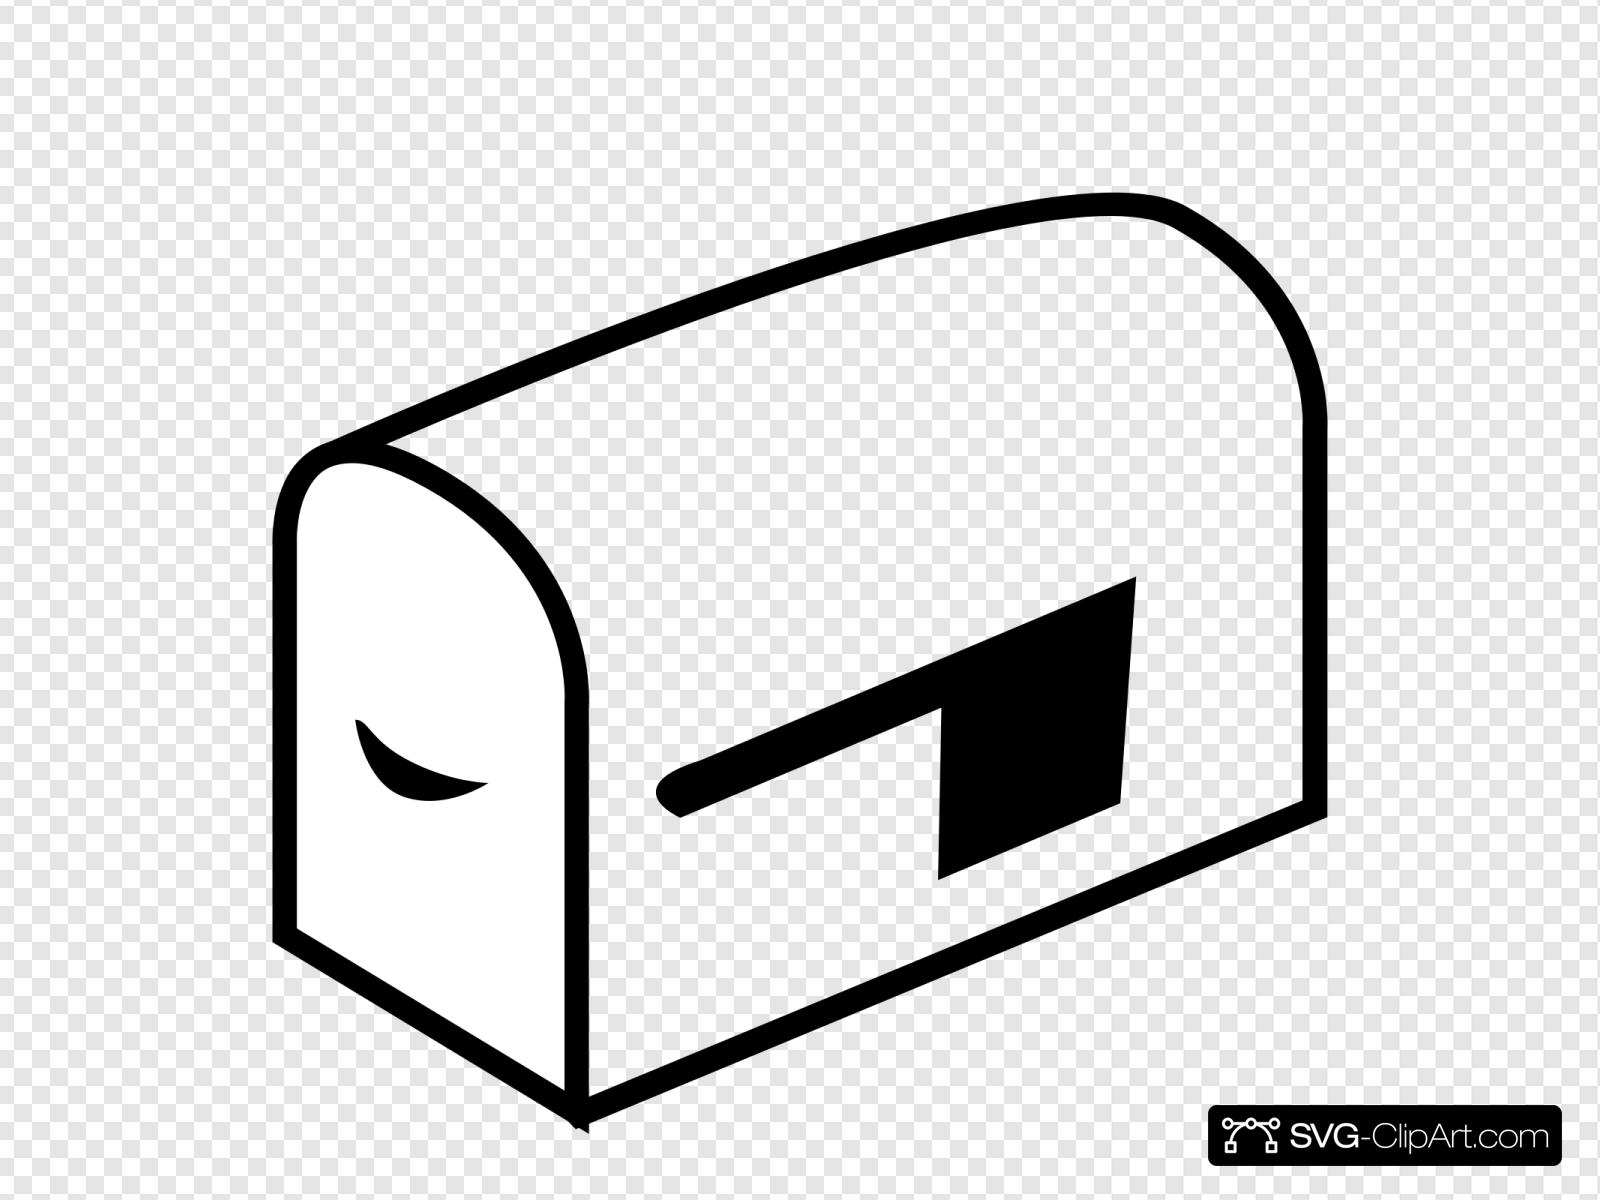 Mailbox clipart svg. Clip art icon and